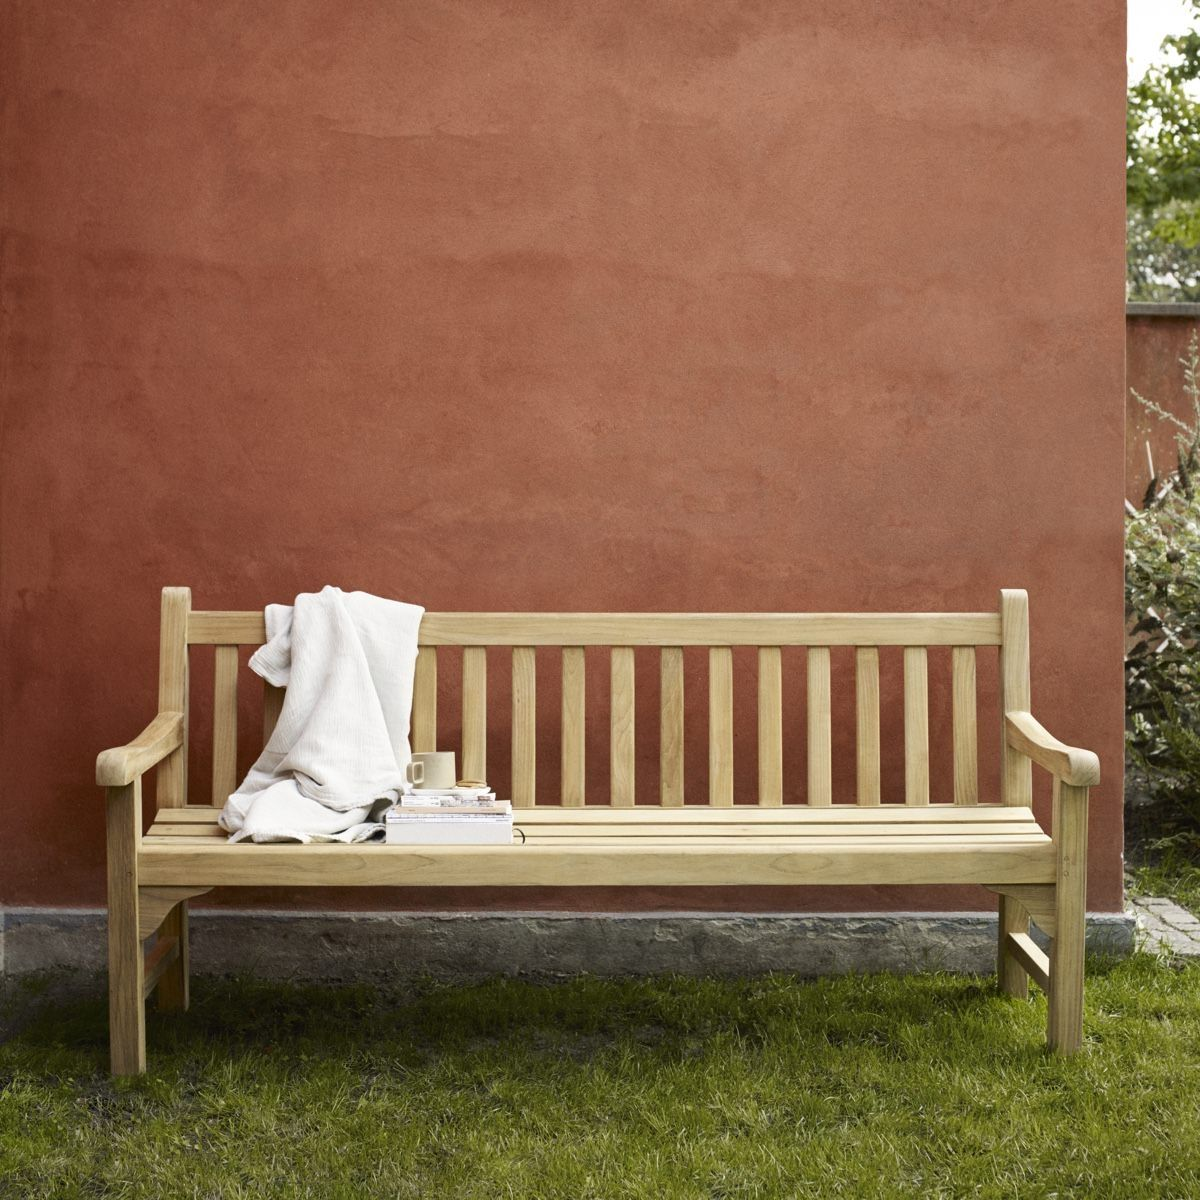 Skagerak England Bench on the lawn